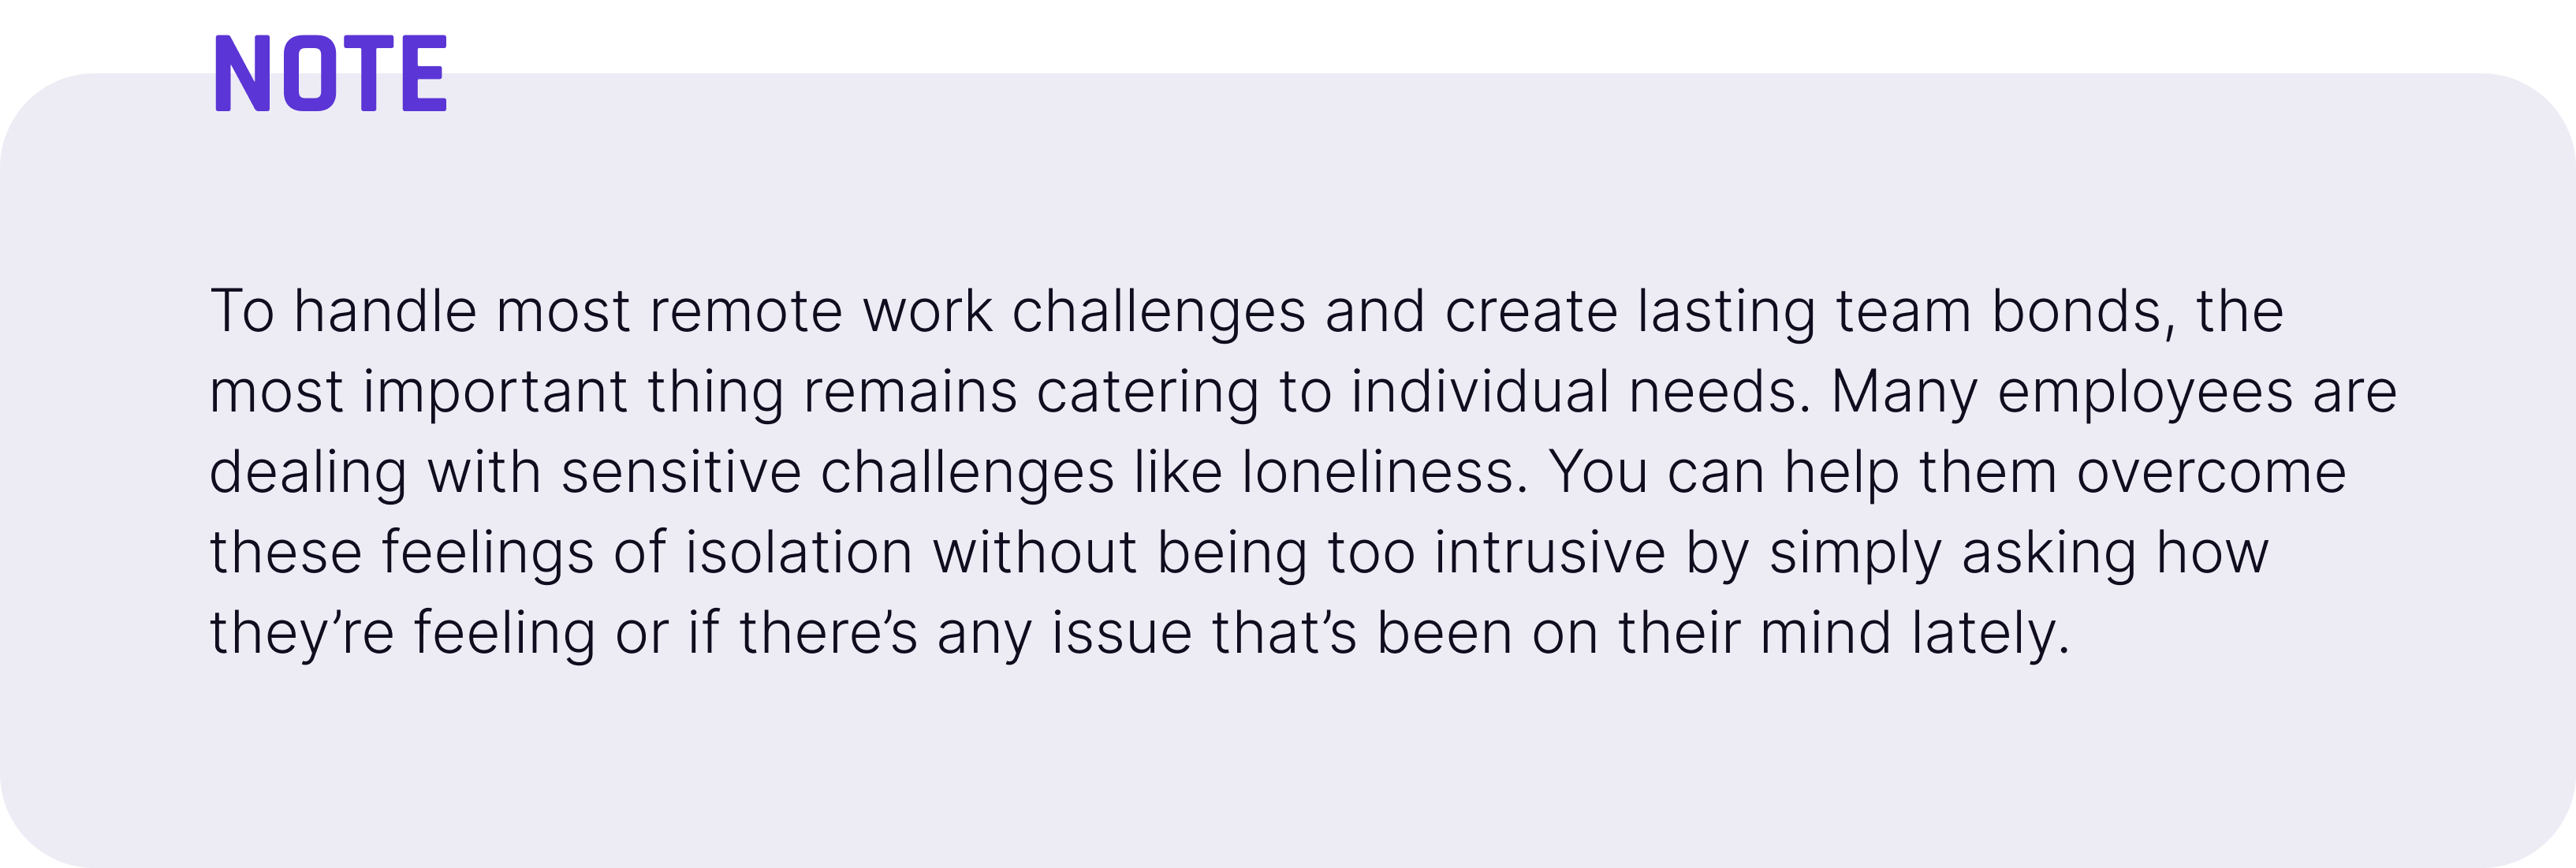 To handle most remote work challenges and create lasting team bonds, the most important thing remains catering to individual needs. Many employees are dealing with sensitive challenges like loneliness. You can help them overcome these feelings of isolation without being too intrusive by simply asking how they're feeling or if there's any issue that's been on their mind lately.